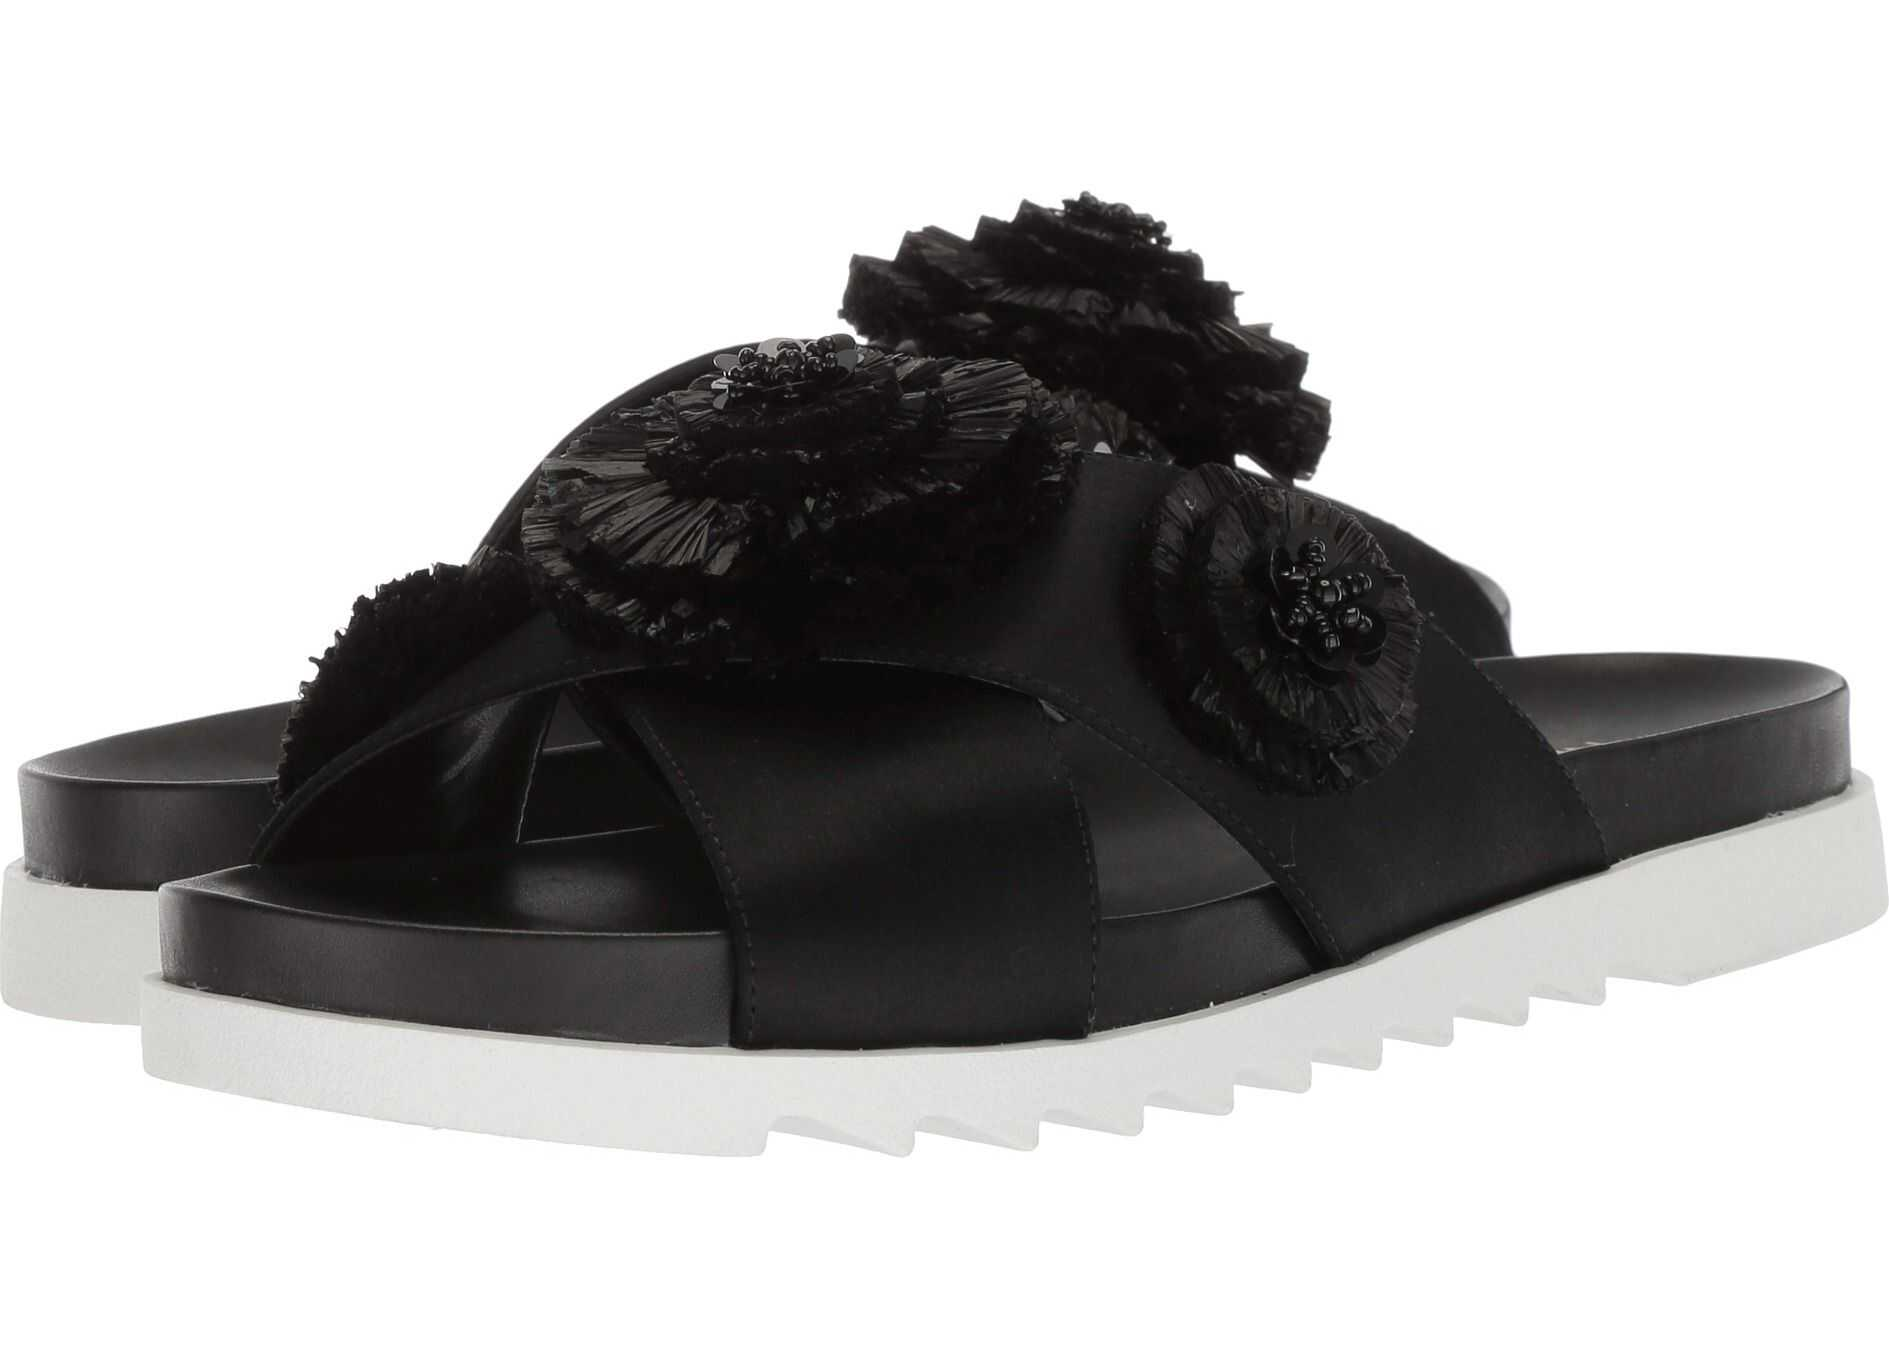 Nine West Feeltheluv Slide Sandal Black Satin